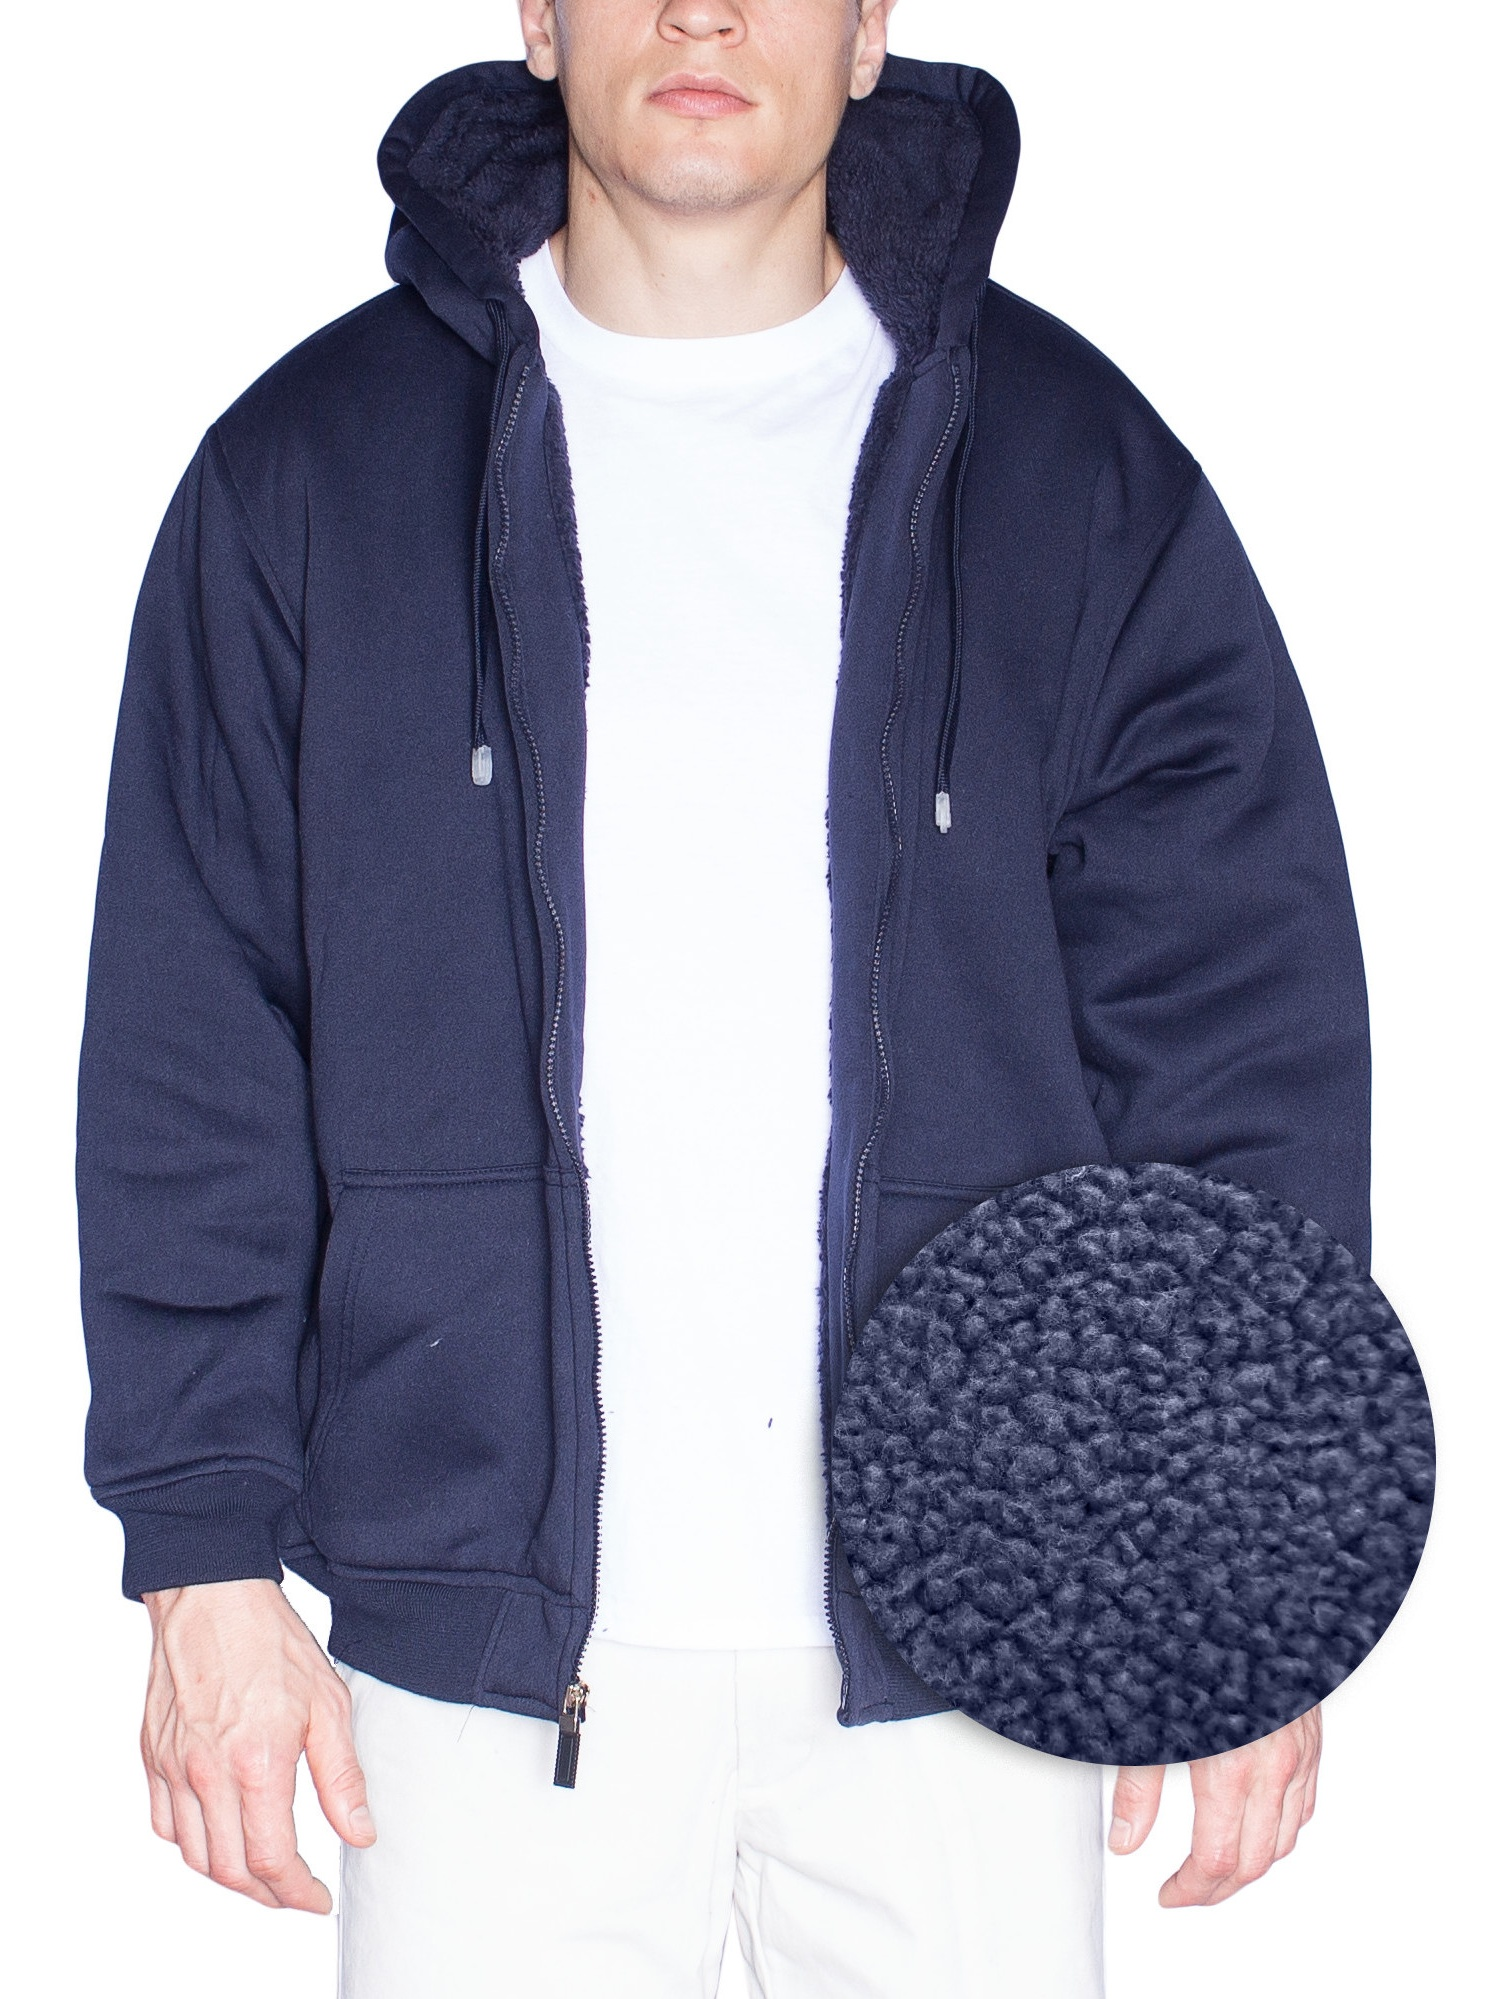 Mens Hoodie For Mens Fleece Jacket Big And Tall Zip Up With Hood (XXXXX-Large, Navy)